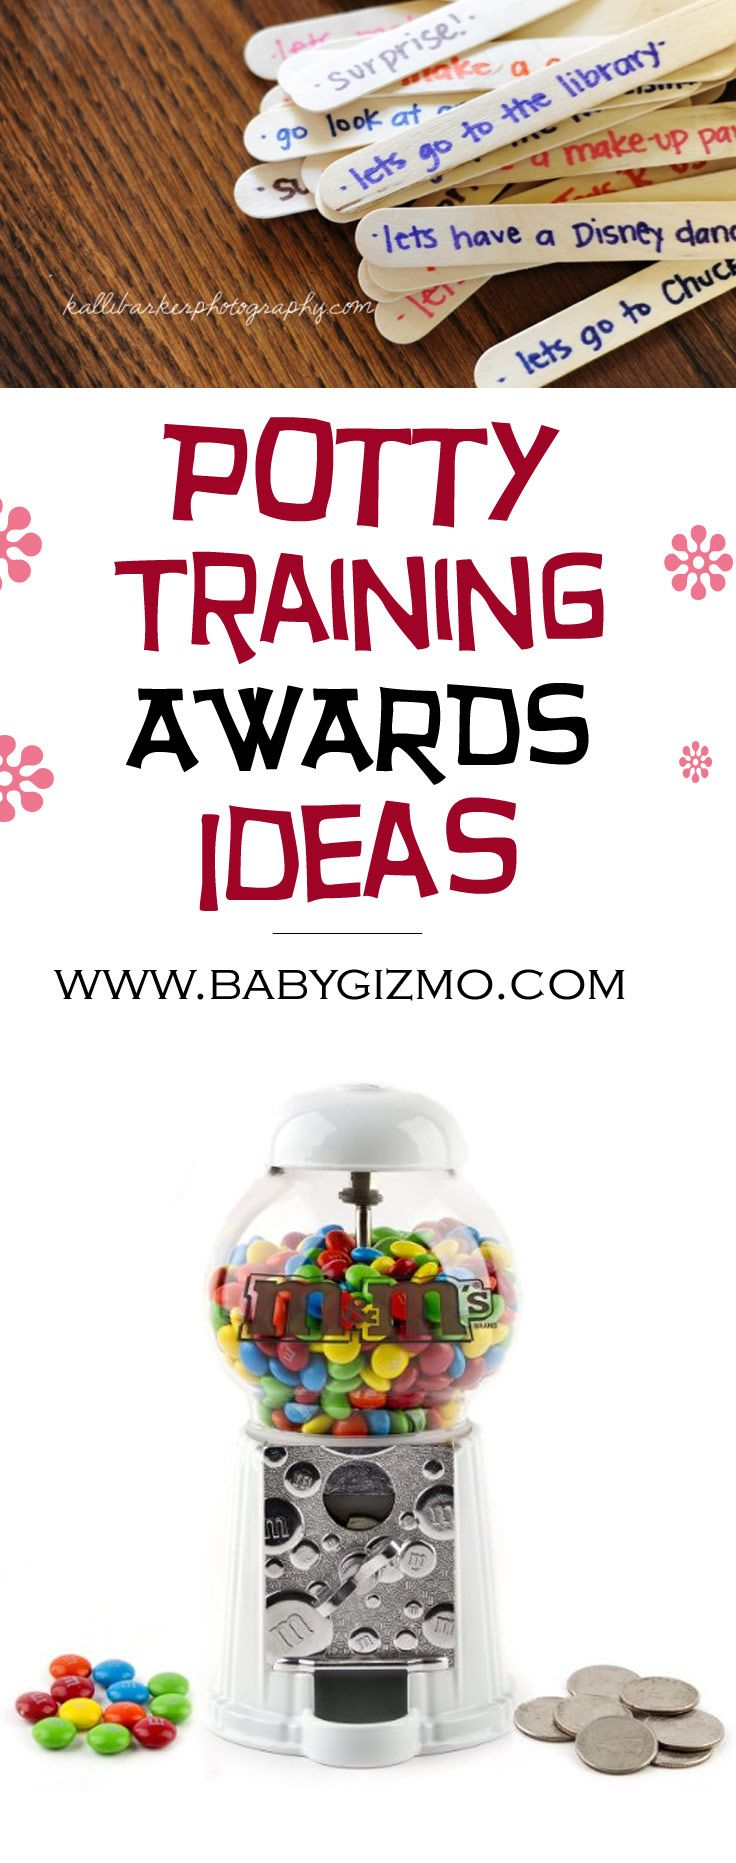 Potty training awards for toddlers! These ideas a brilliant for getting a child motivated! #babygizmo #toddler #potty #pottytraining